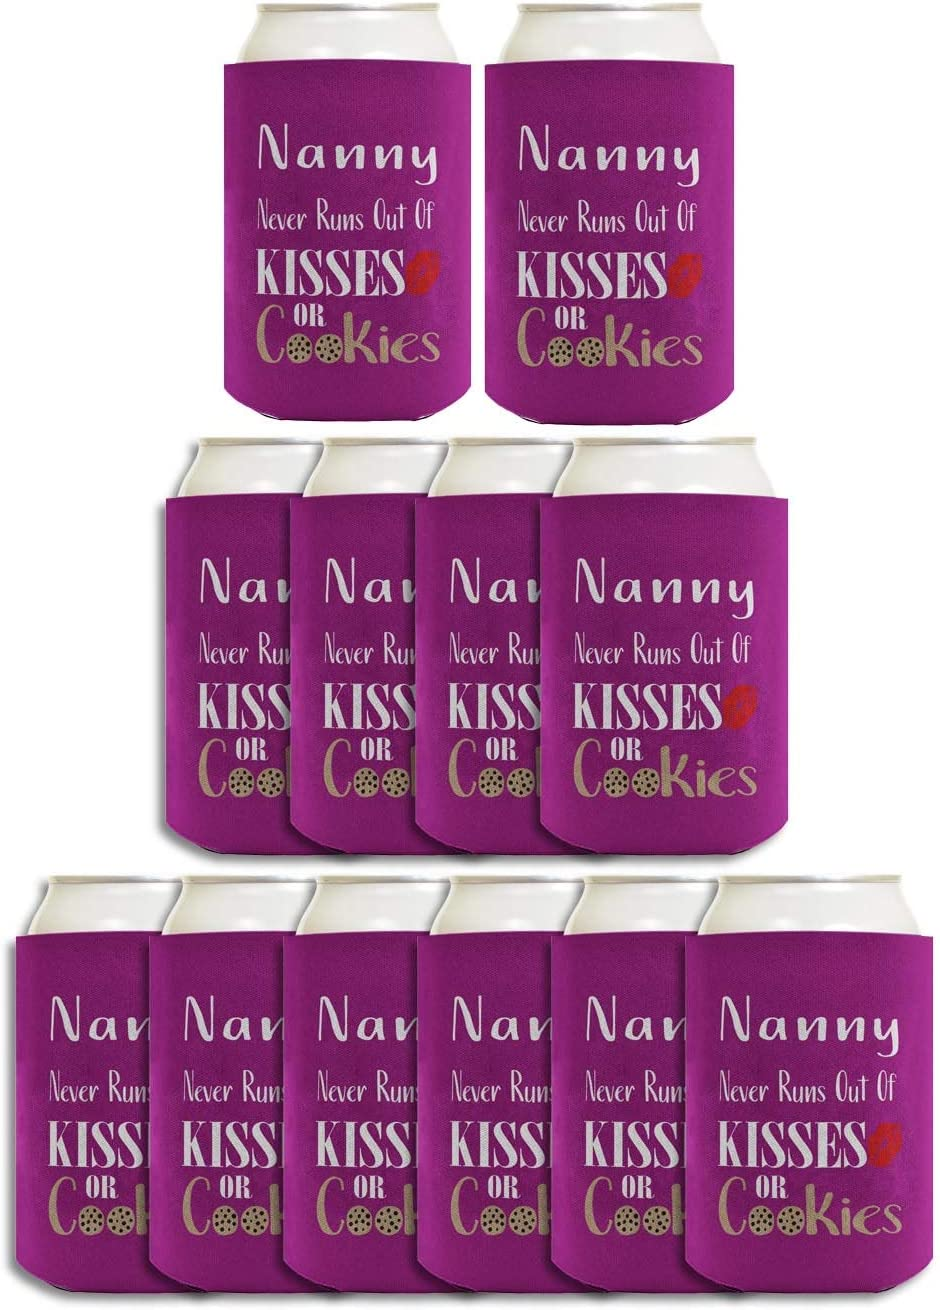 Best Nanny Ever Gifts Never Runs Of Out Now free shipping Kisses In stock Or Cookies